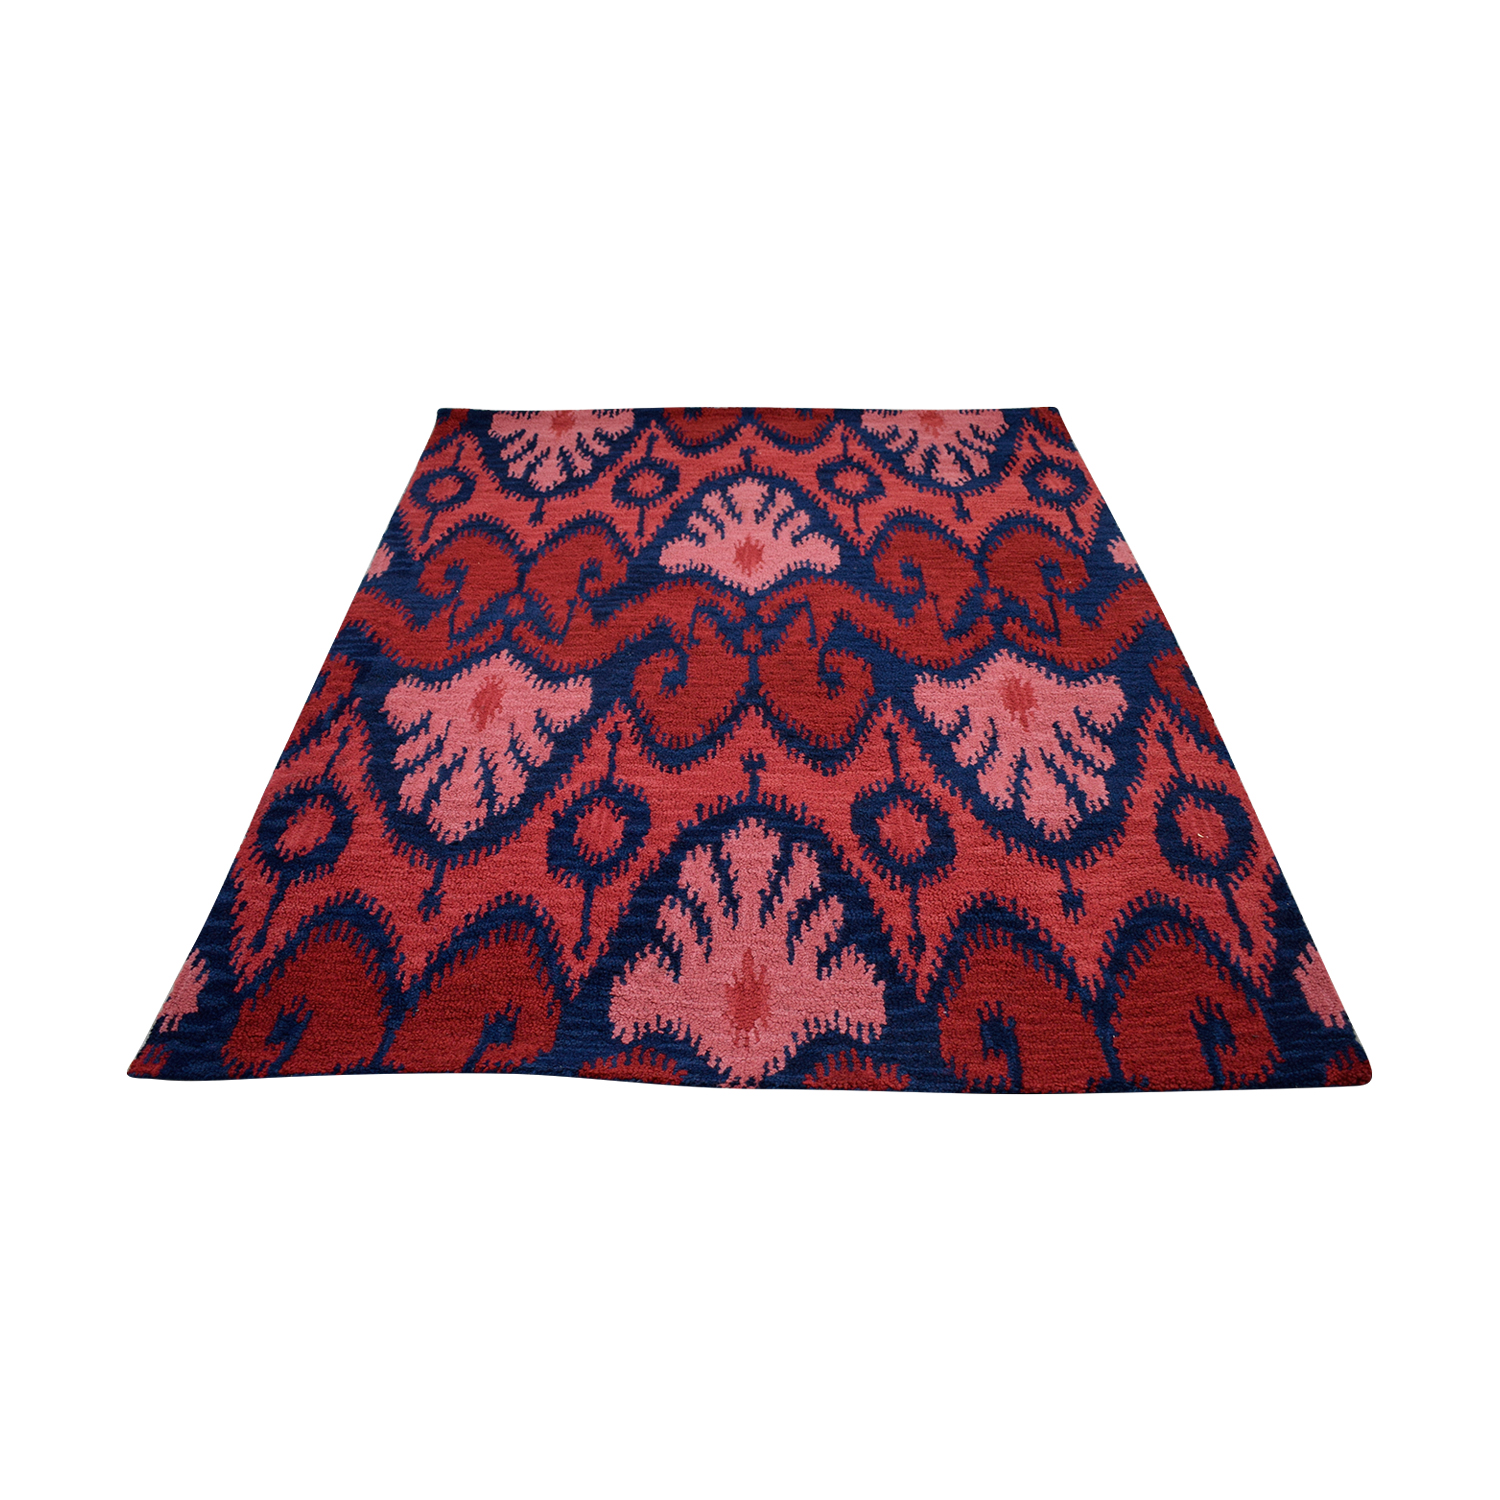 Ikat Wool Red and Navy Rug nj